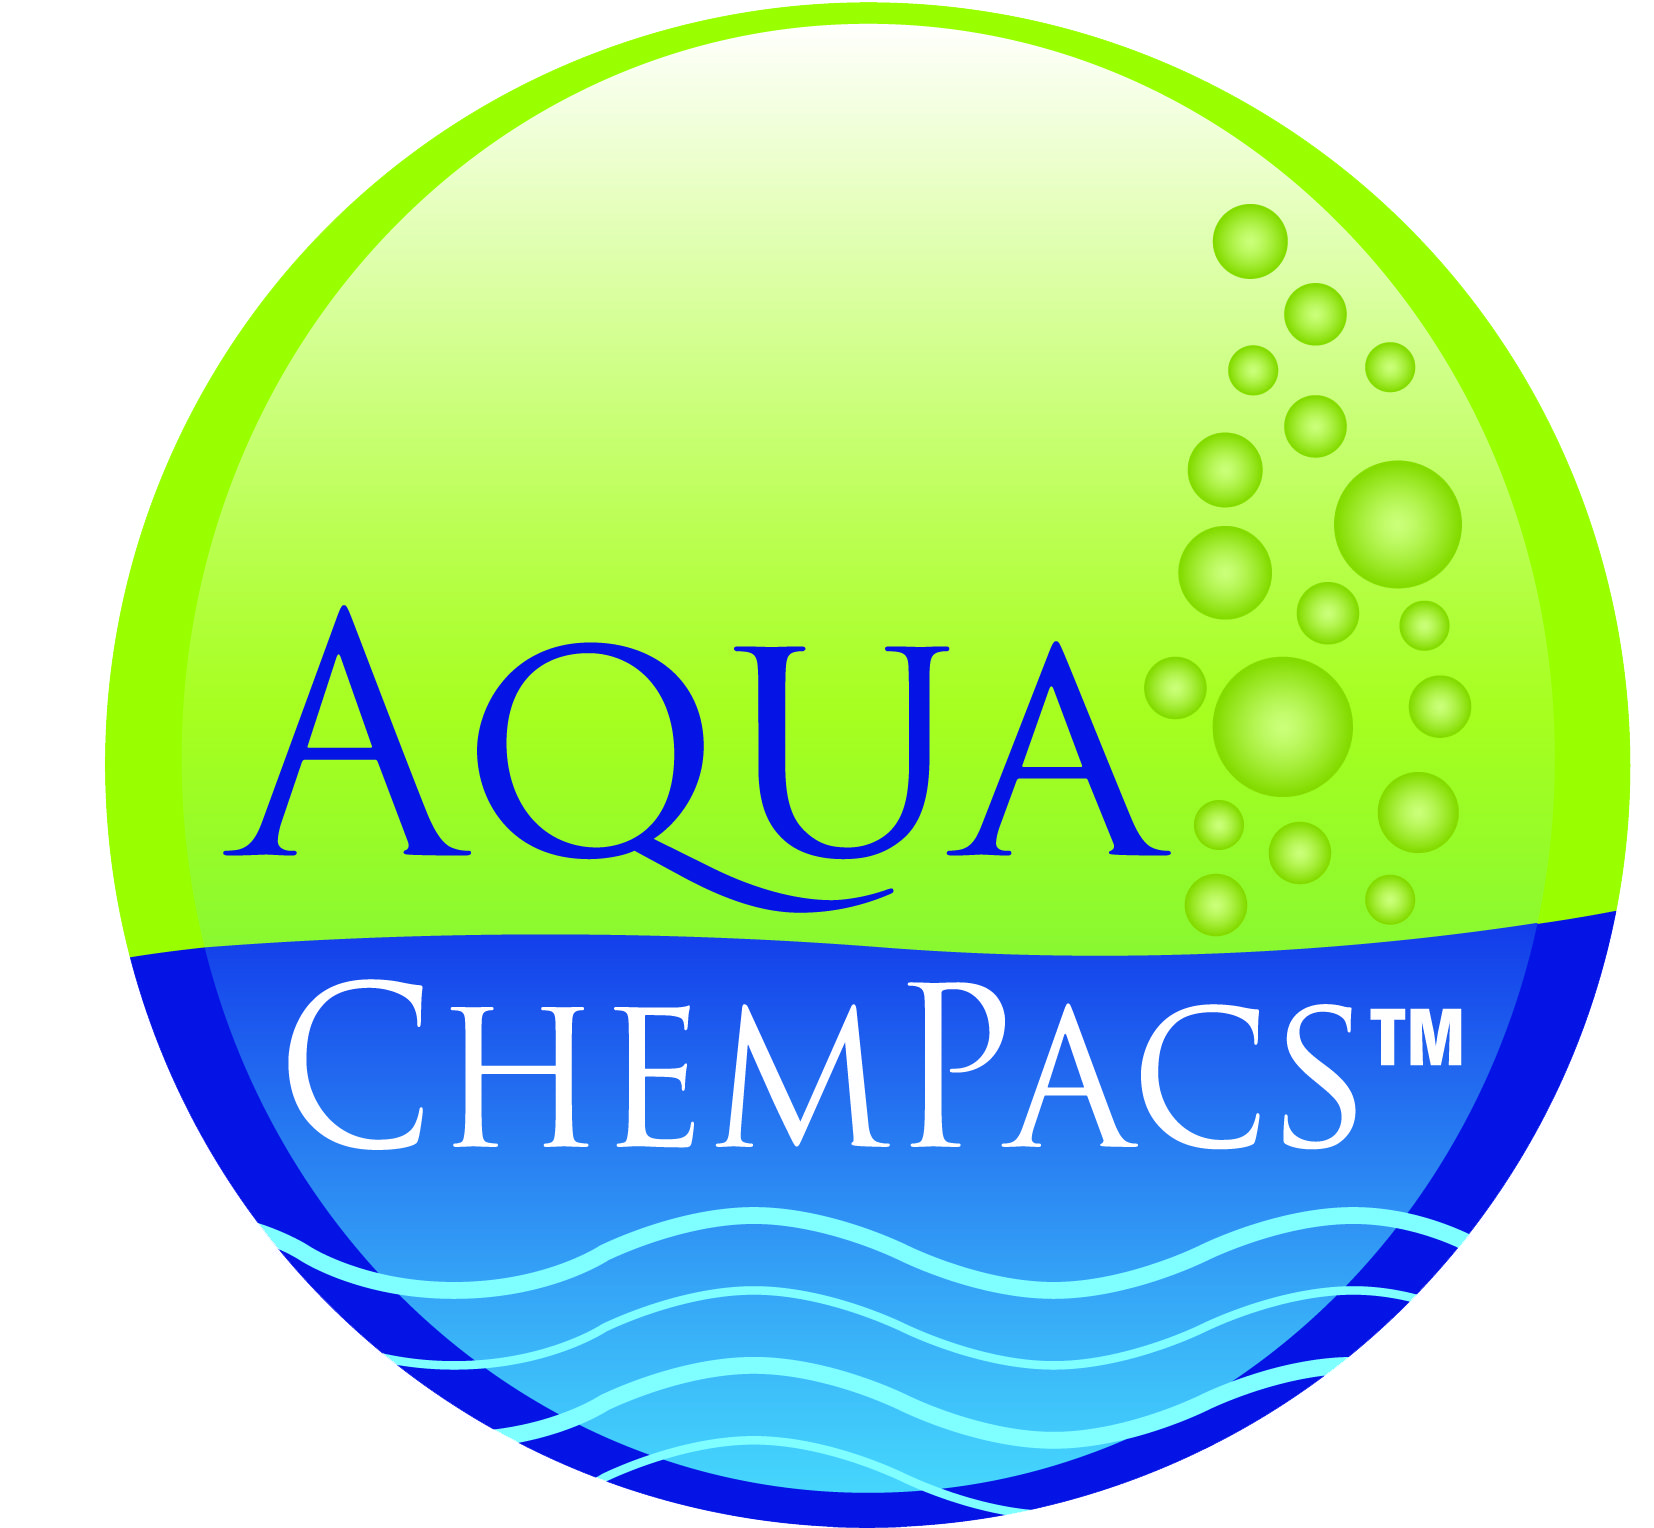 Dissolvable concentrated liquid cleaning packs, cleaning chemicals, cleaning kits, environmentally friendly